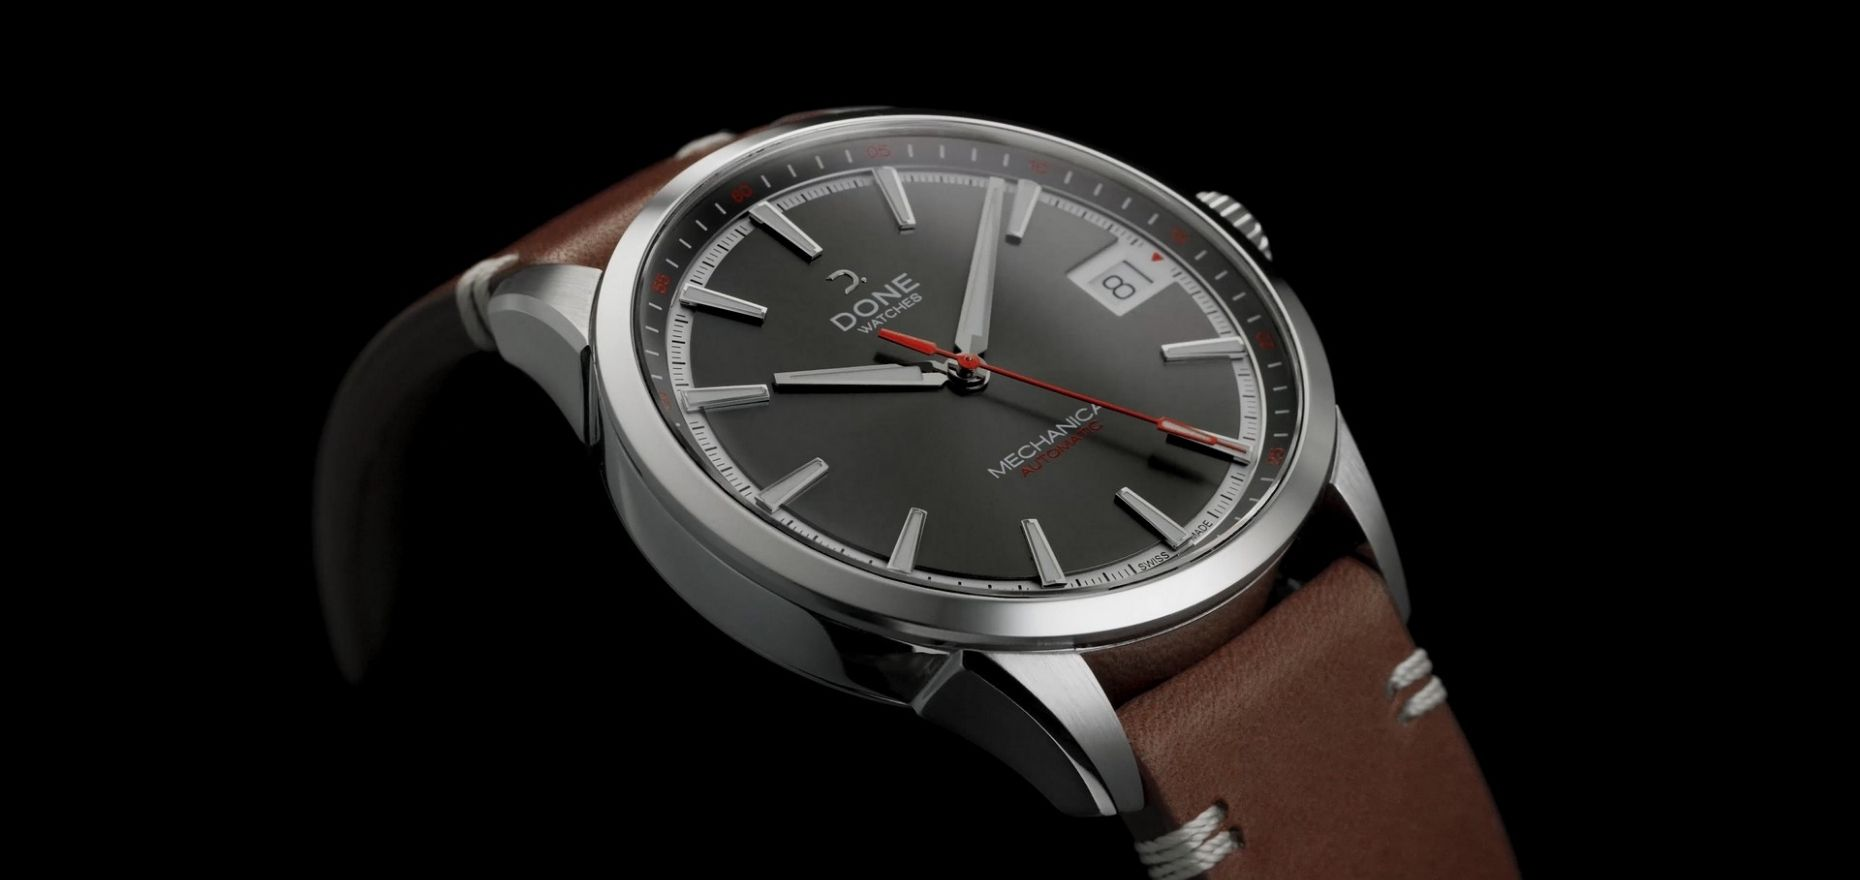 DONE Watches: An up-and-coming indie watch brand from Switzerland